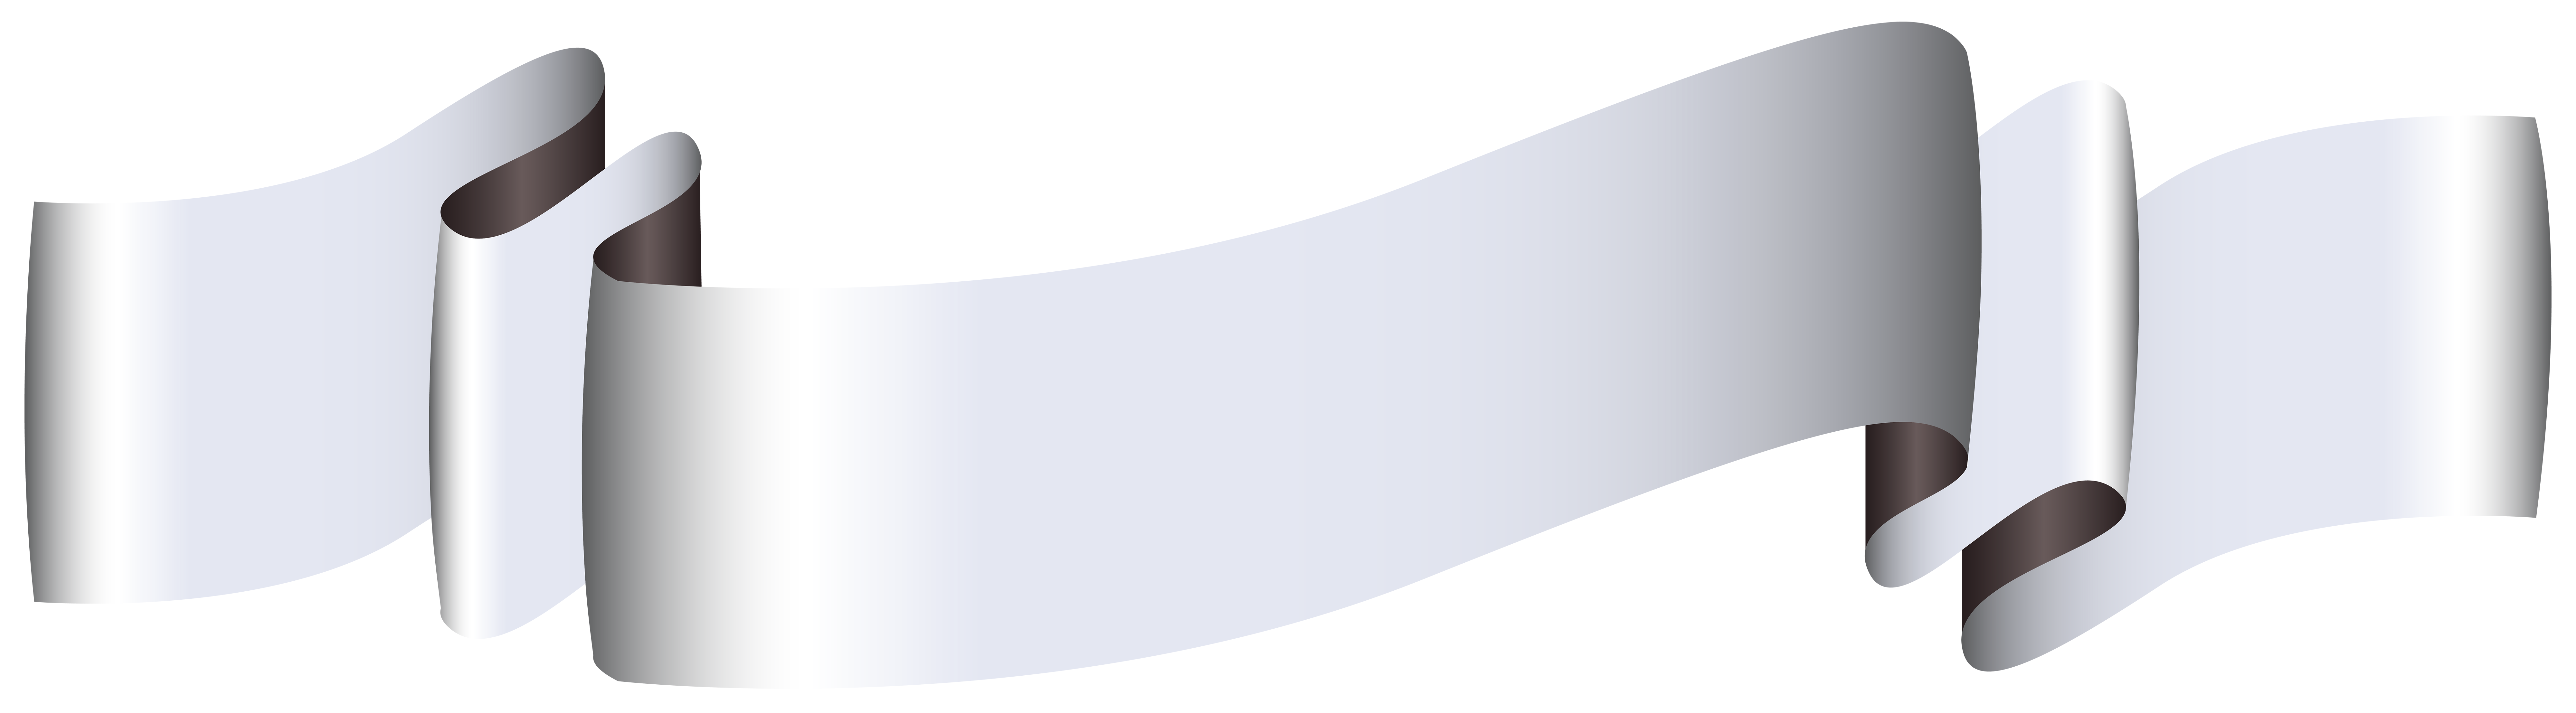 Silver banner png. Clip art image gallery